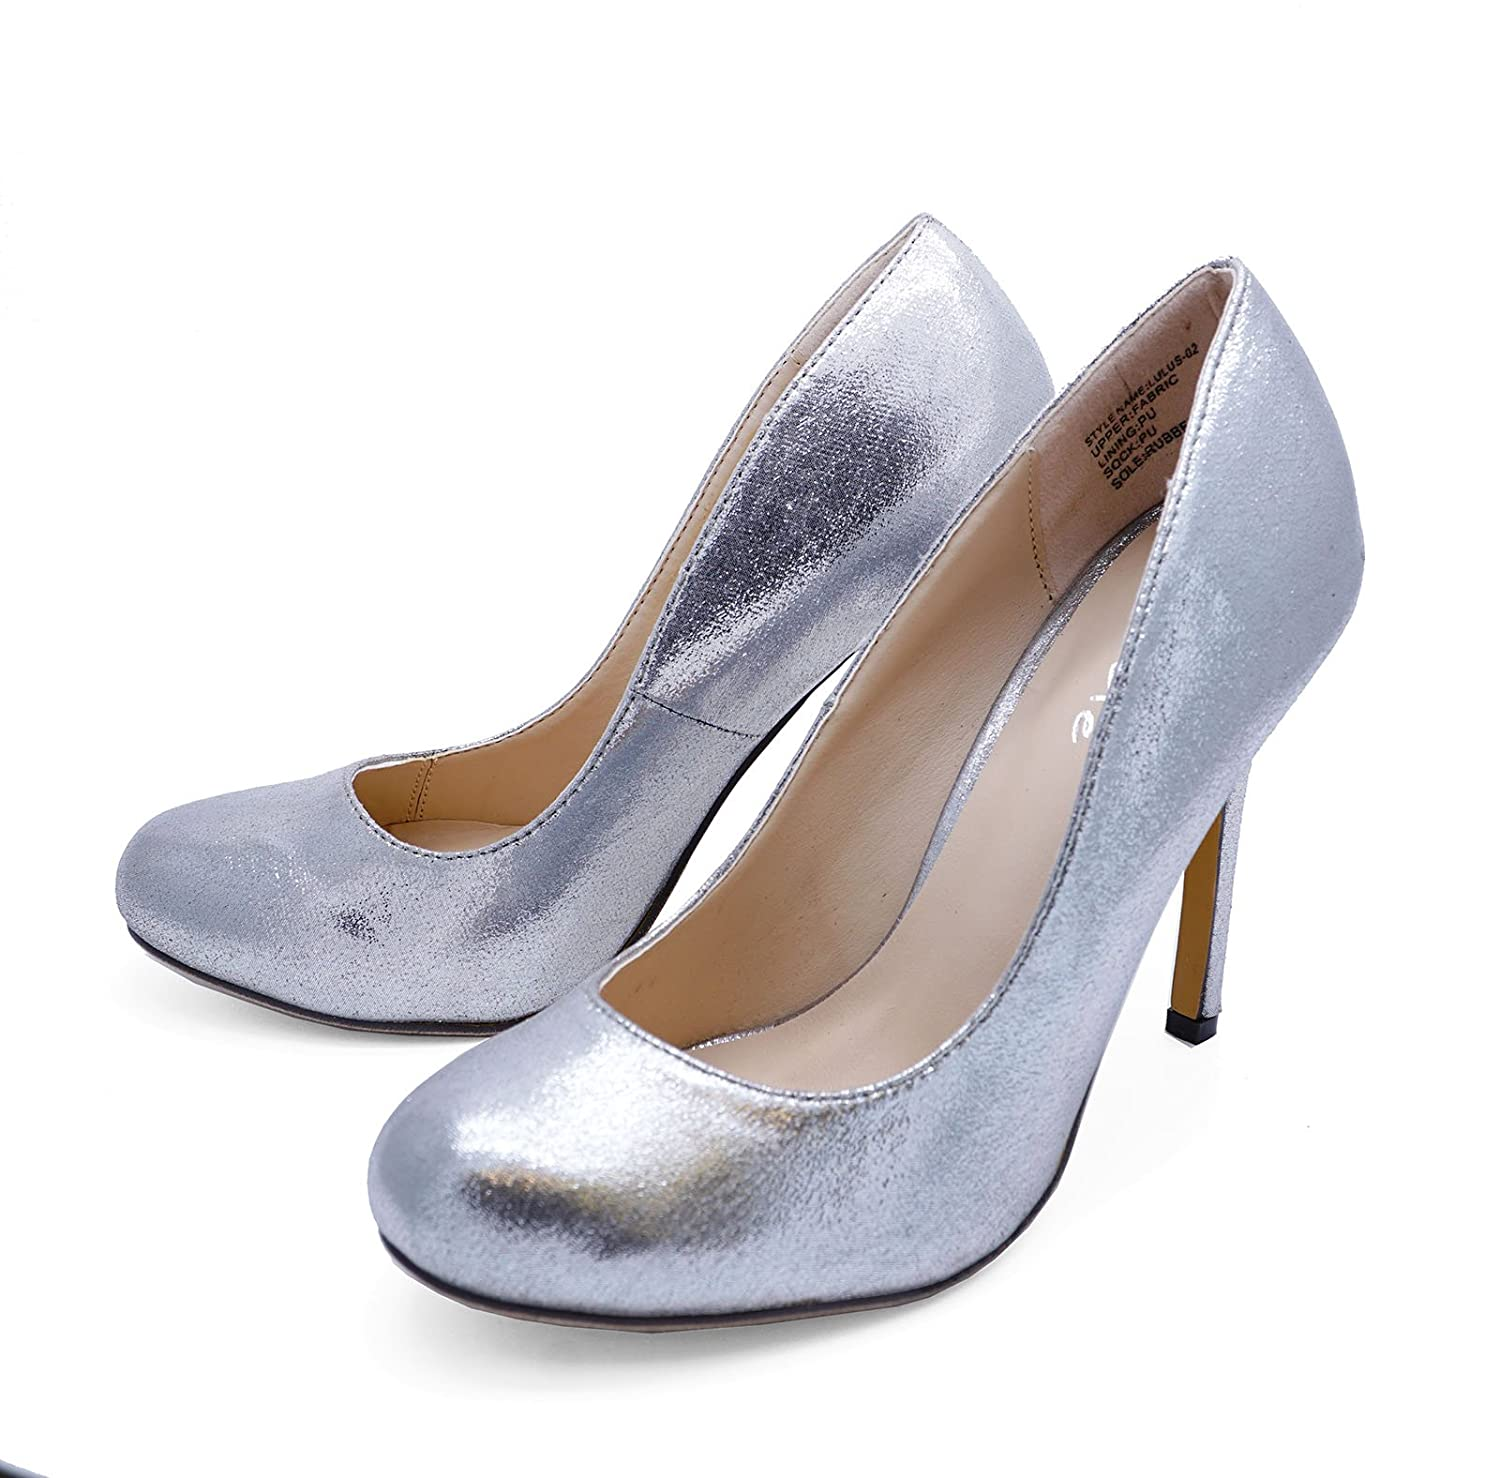 Ladies Silver Slip-On High Heel Elegant Wedding Prom Court Smart Shoes Sizes 3-8: Amazon.co.uk: Shoes & Bags